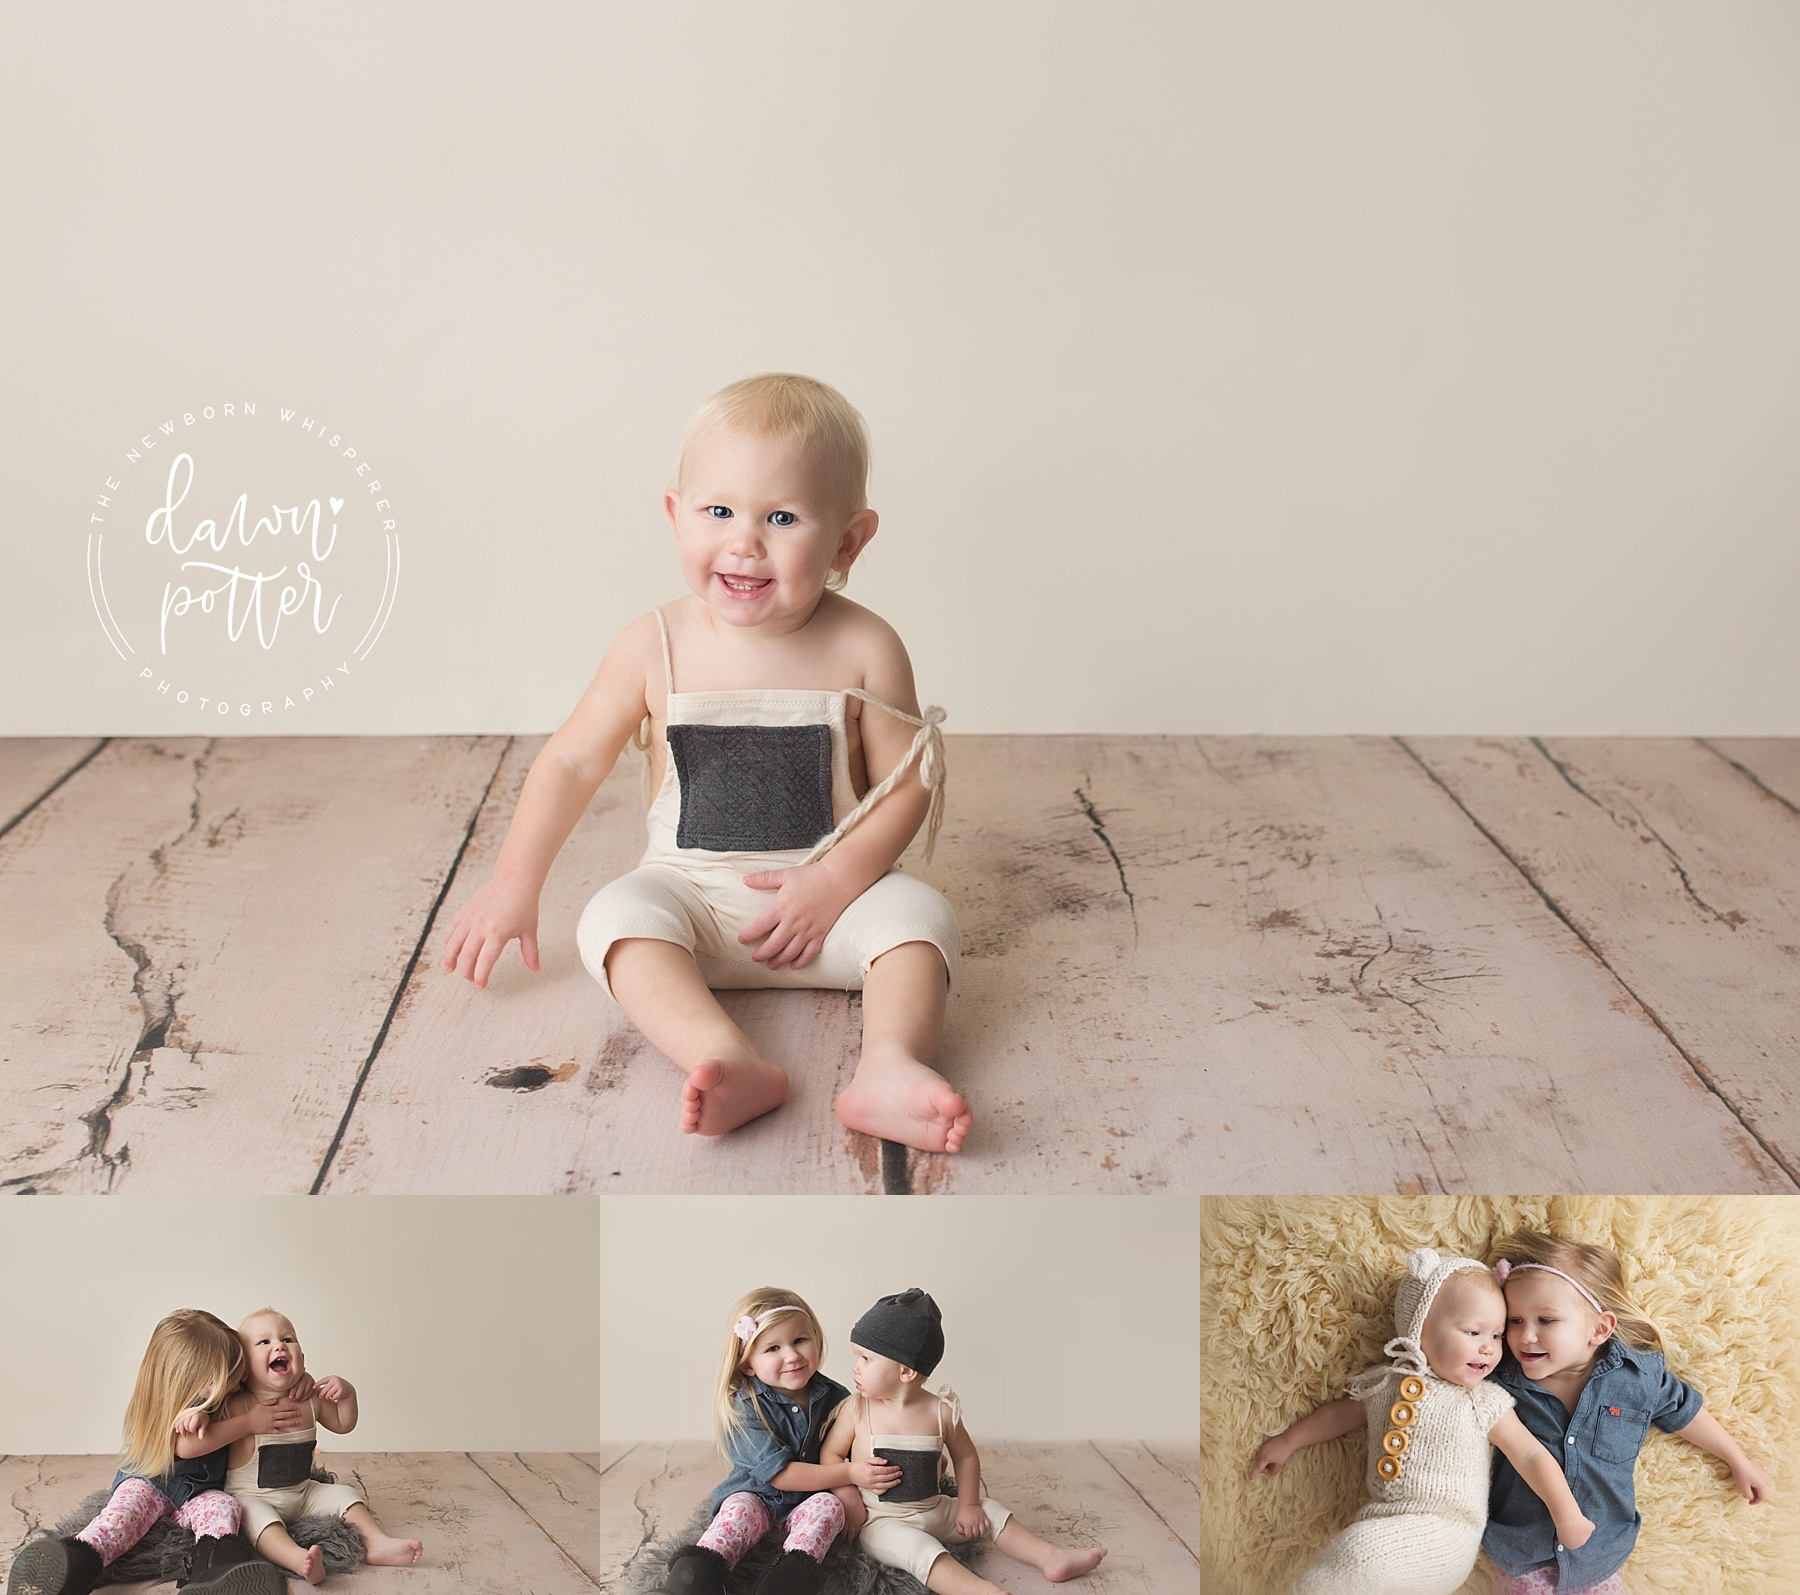 Issaquah cake smash photographer | Issaquah milestone session | cake smash session | one year session